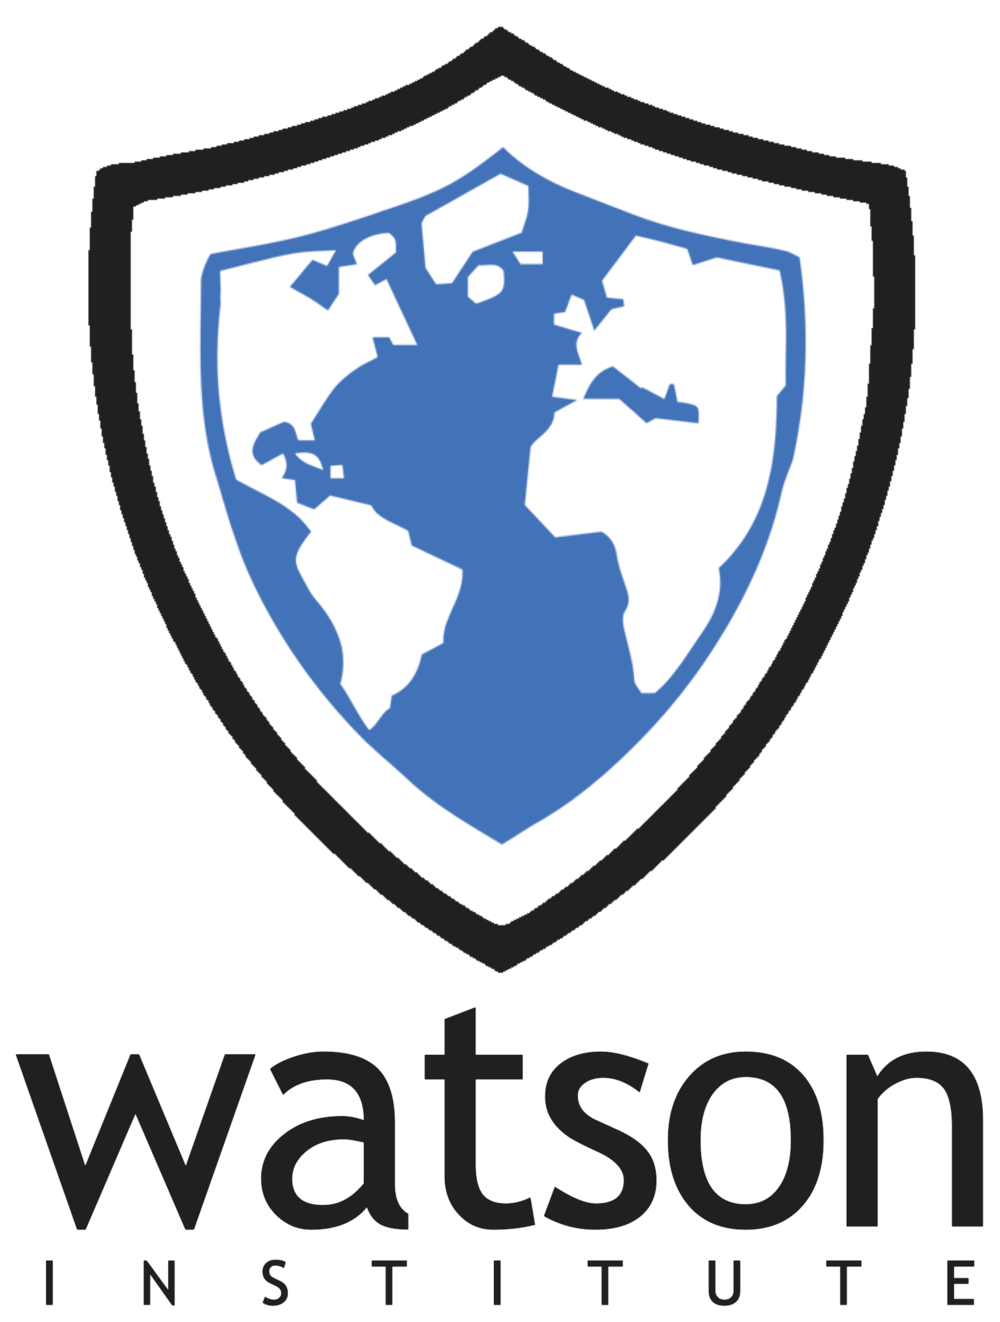 Watson Institute Logo Official - SMALL.png